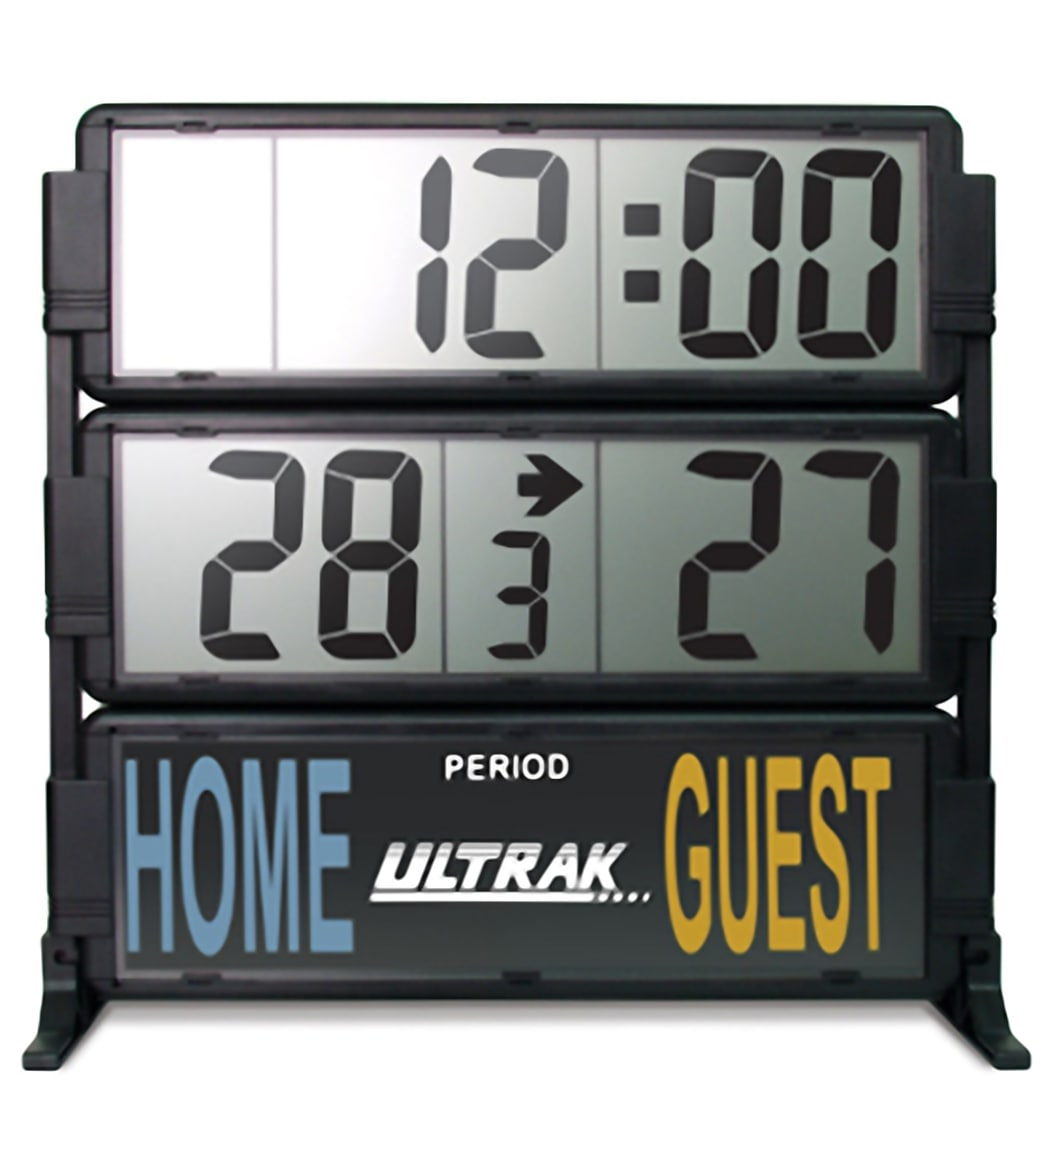 Ultrak Water Polo Scoreboard With Period And Possession